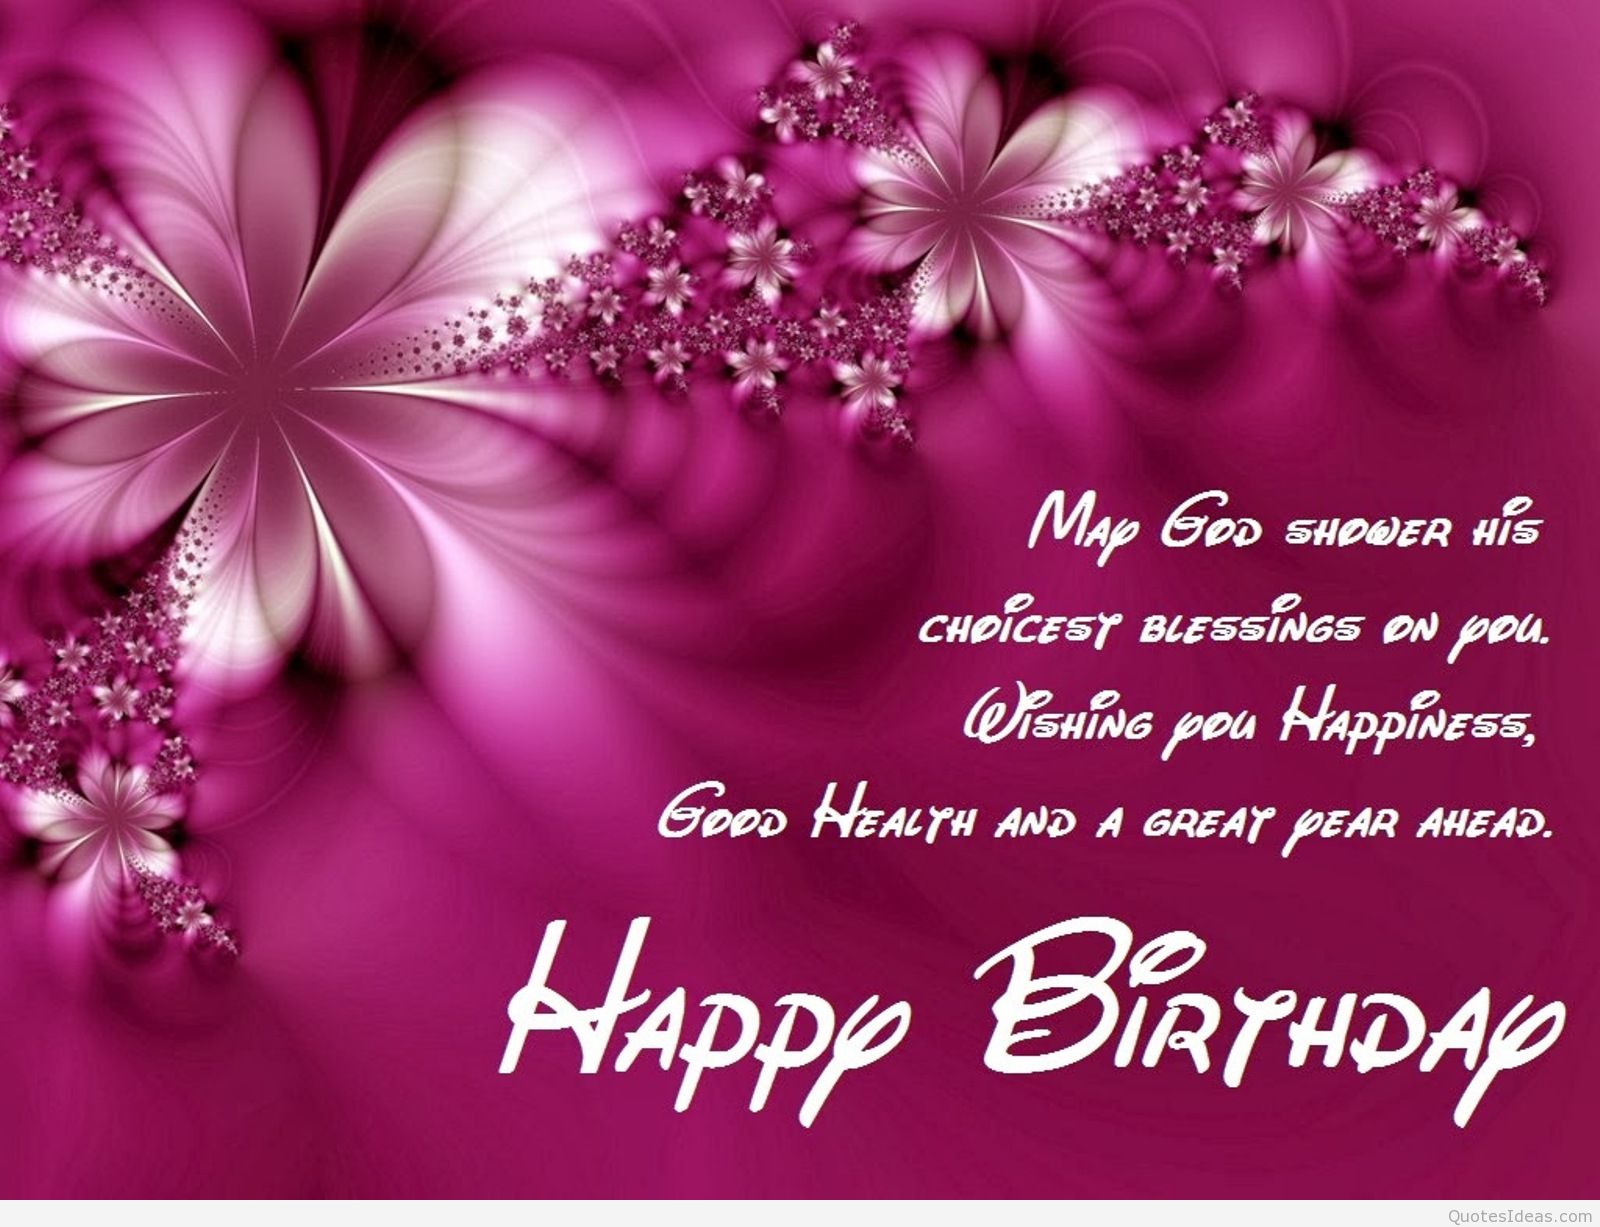 happy birthday sister quotes images ; Happy-Birthday-Sister-Quotes